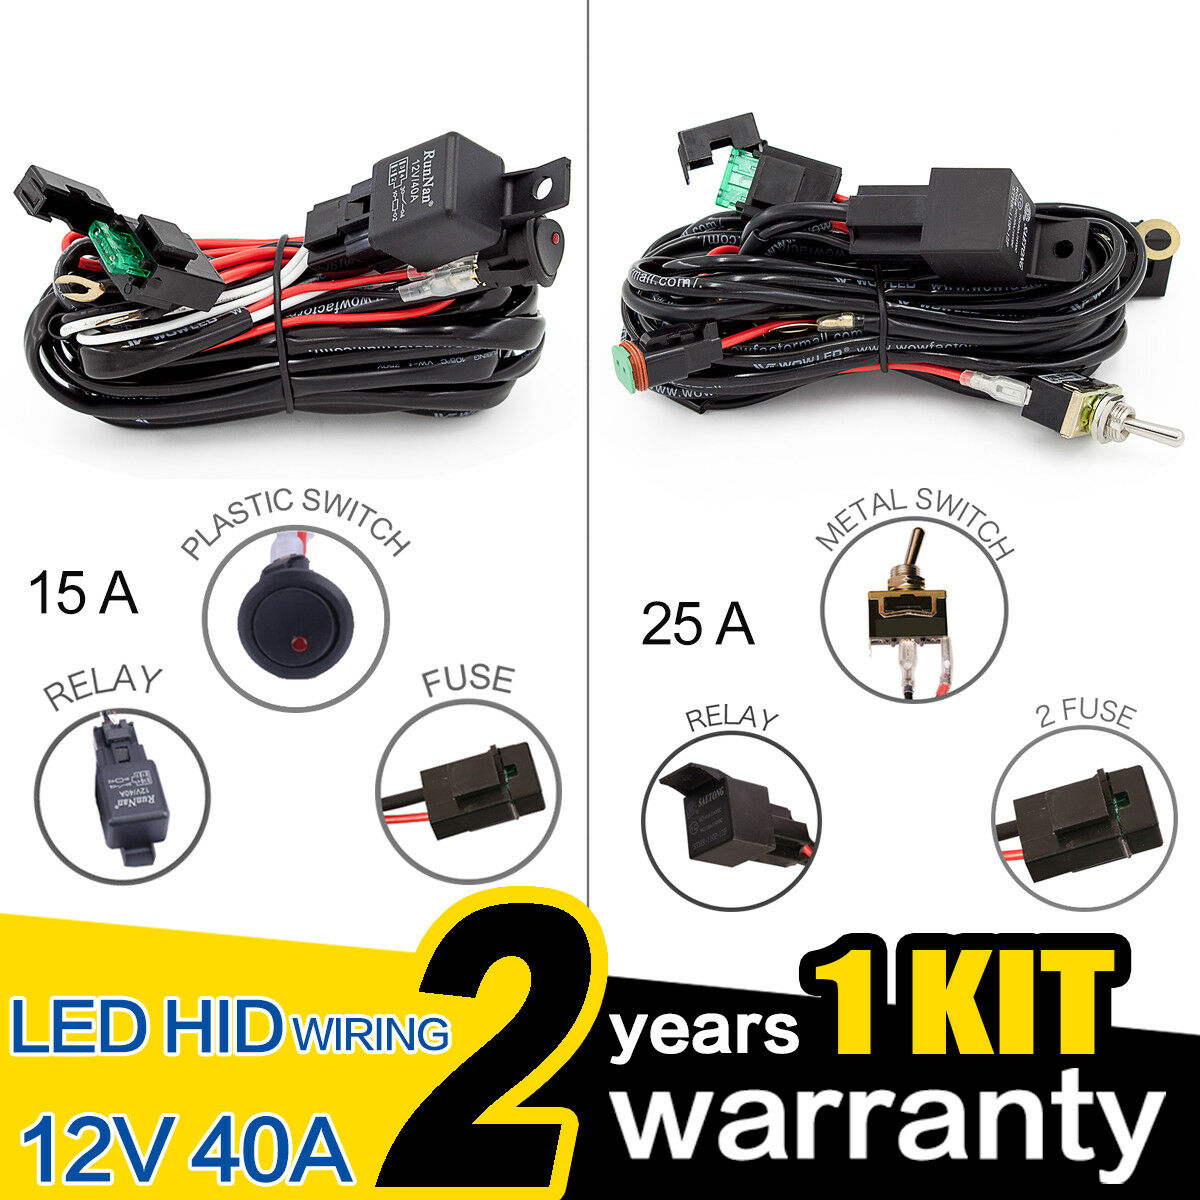 Details about WOW- Premium LED HID Driving Light Bar Wiring Harness on